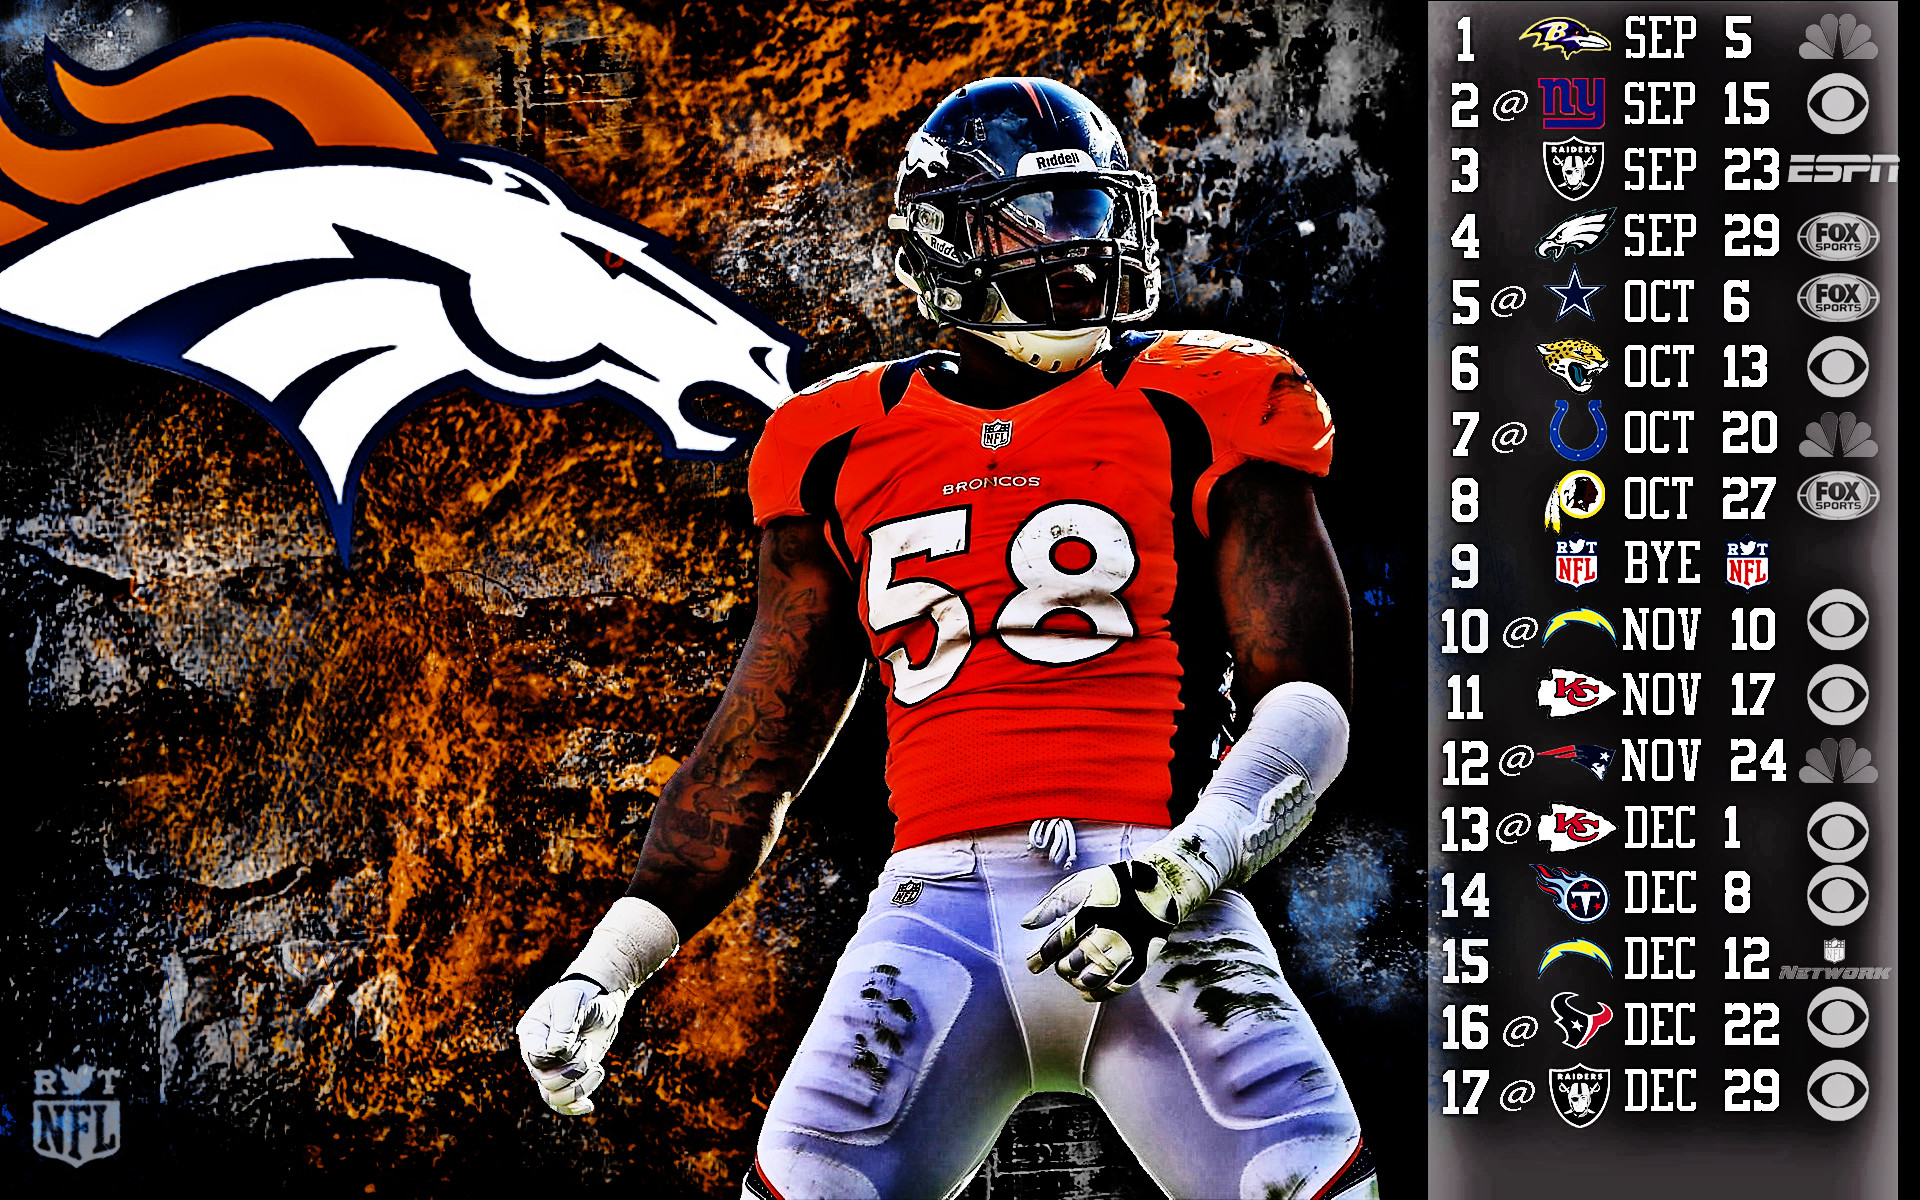 2013 Denver Broncos football nfl g wallpaper | | 130406 |  WallpaperUP